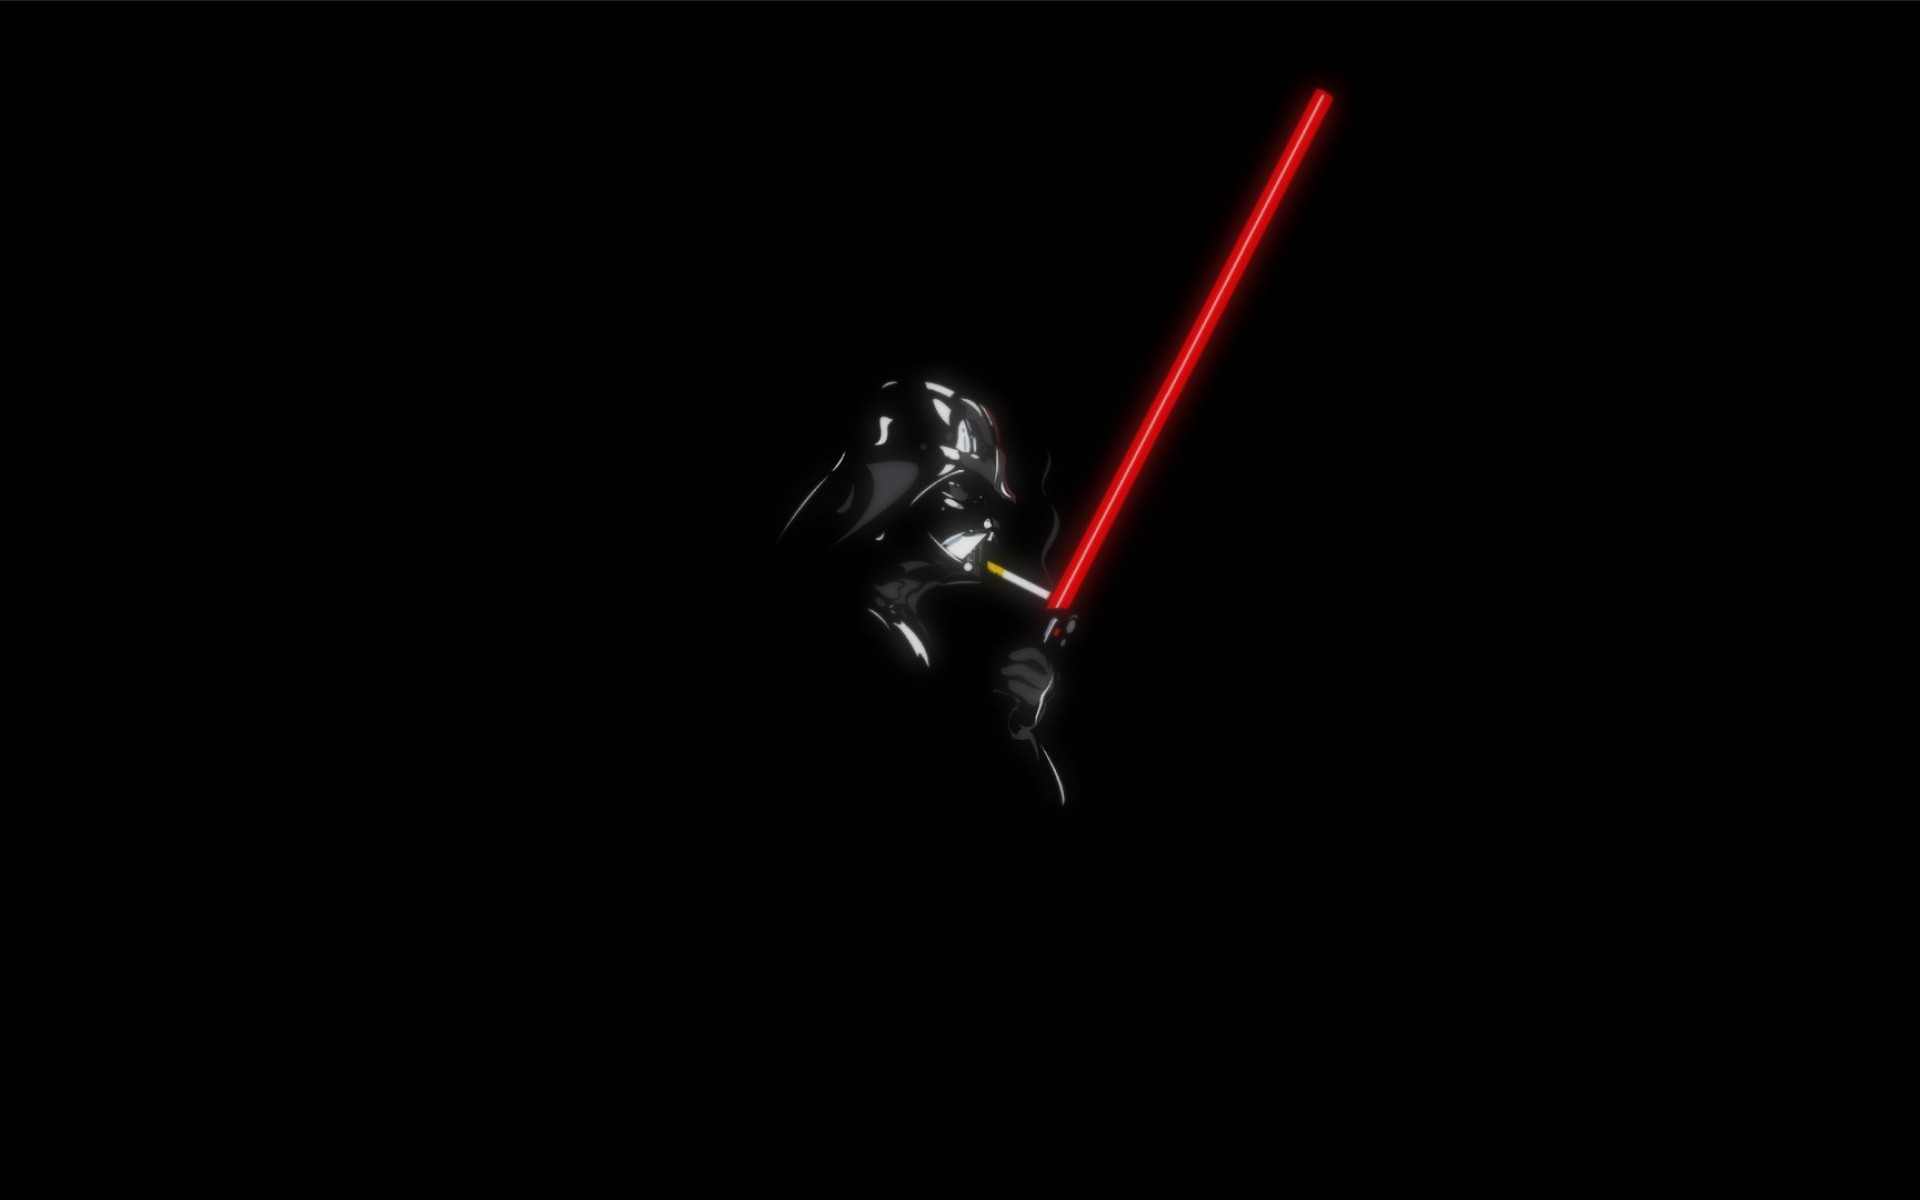 Darth Vader Iphone Wallpaper Hd Darth Vader Wallpapers Pictures Images